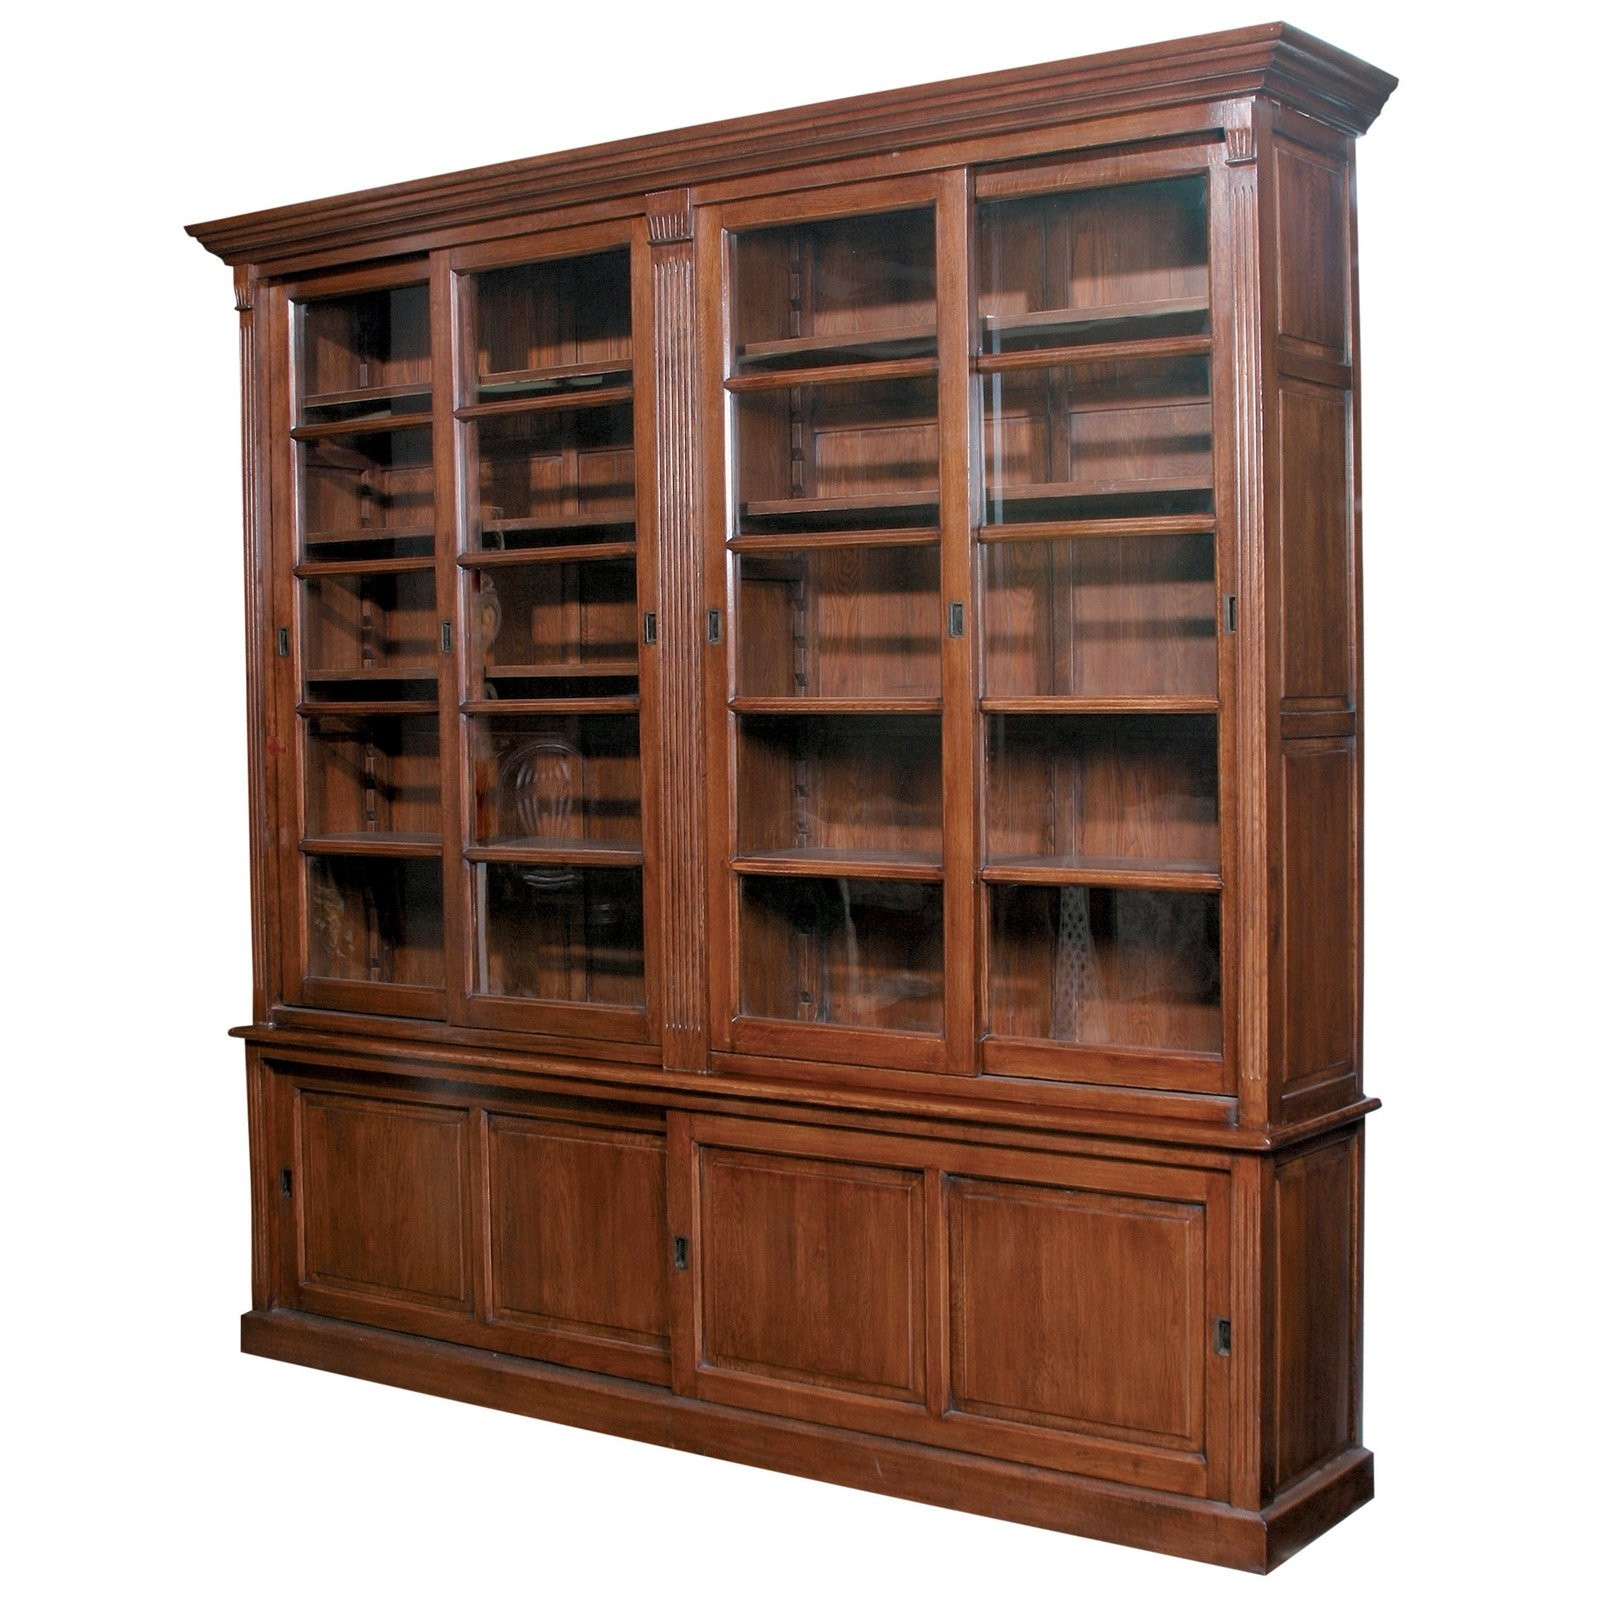 Furniture Un Polish Wooden Bookcase With Glass Doors Chiltern Oak For Large Wooden Bookcases (View 13 of 15)